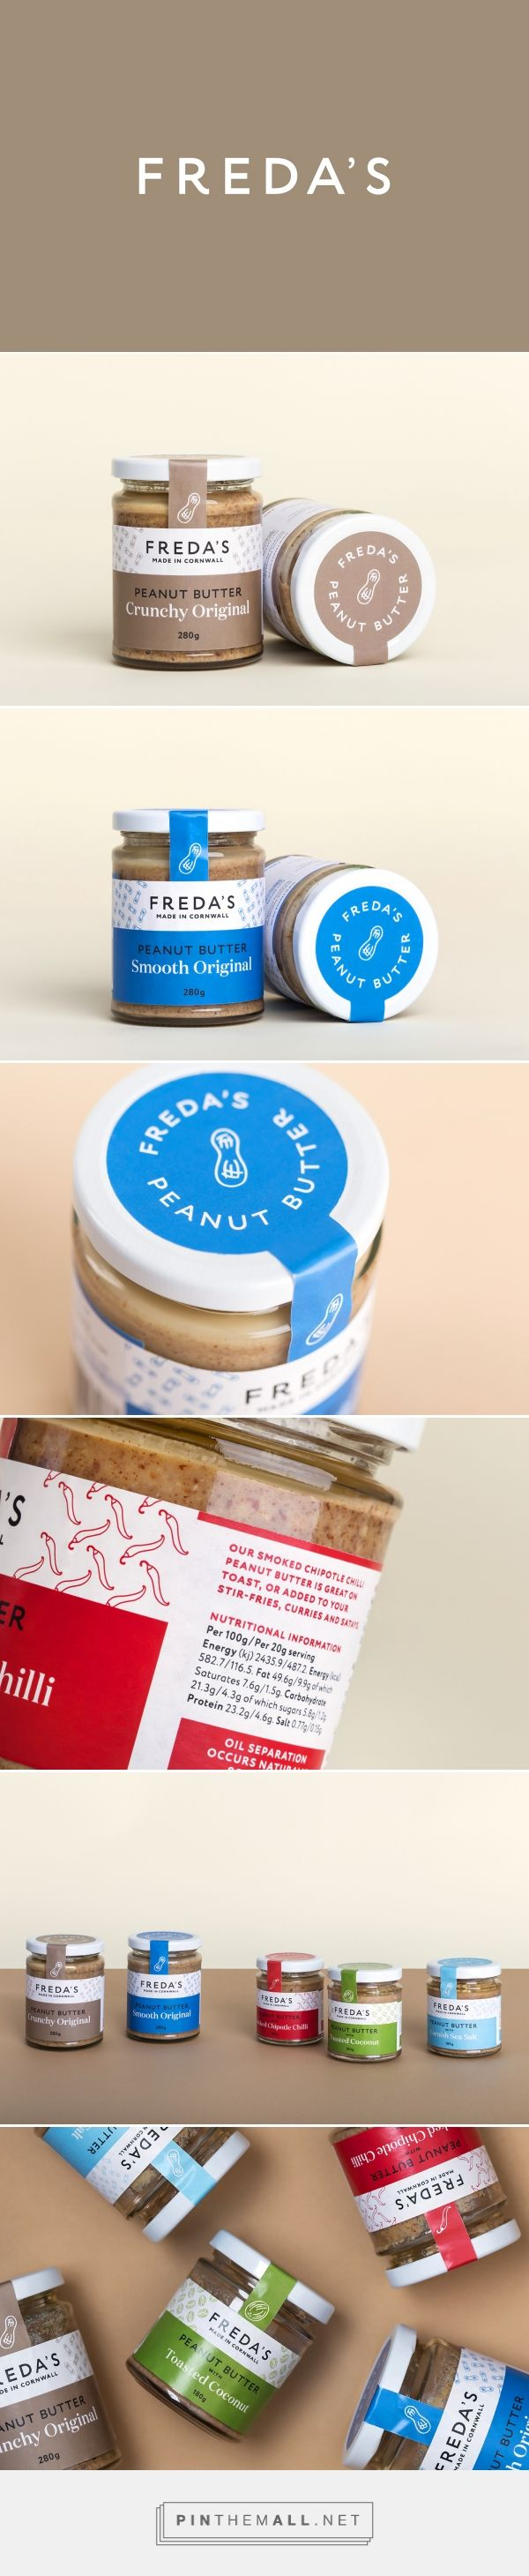 Freda's Peanut Butter Packaging by Friends Studio | Fivestar Branding Agency – Design and Branding Agency & Curated Inspiration Gallery  #peanutbutter #peanutbutterpackaging #packaging #package #packagedesign #packagingdesign #design #designinspiration